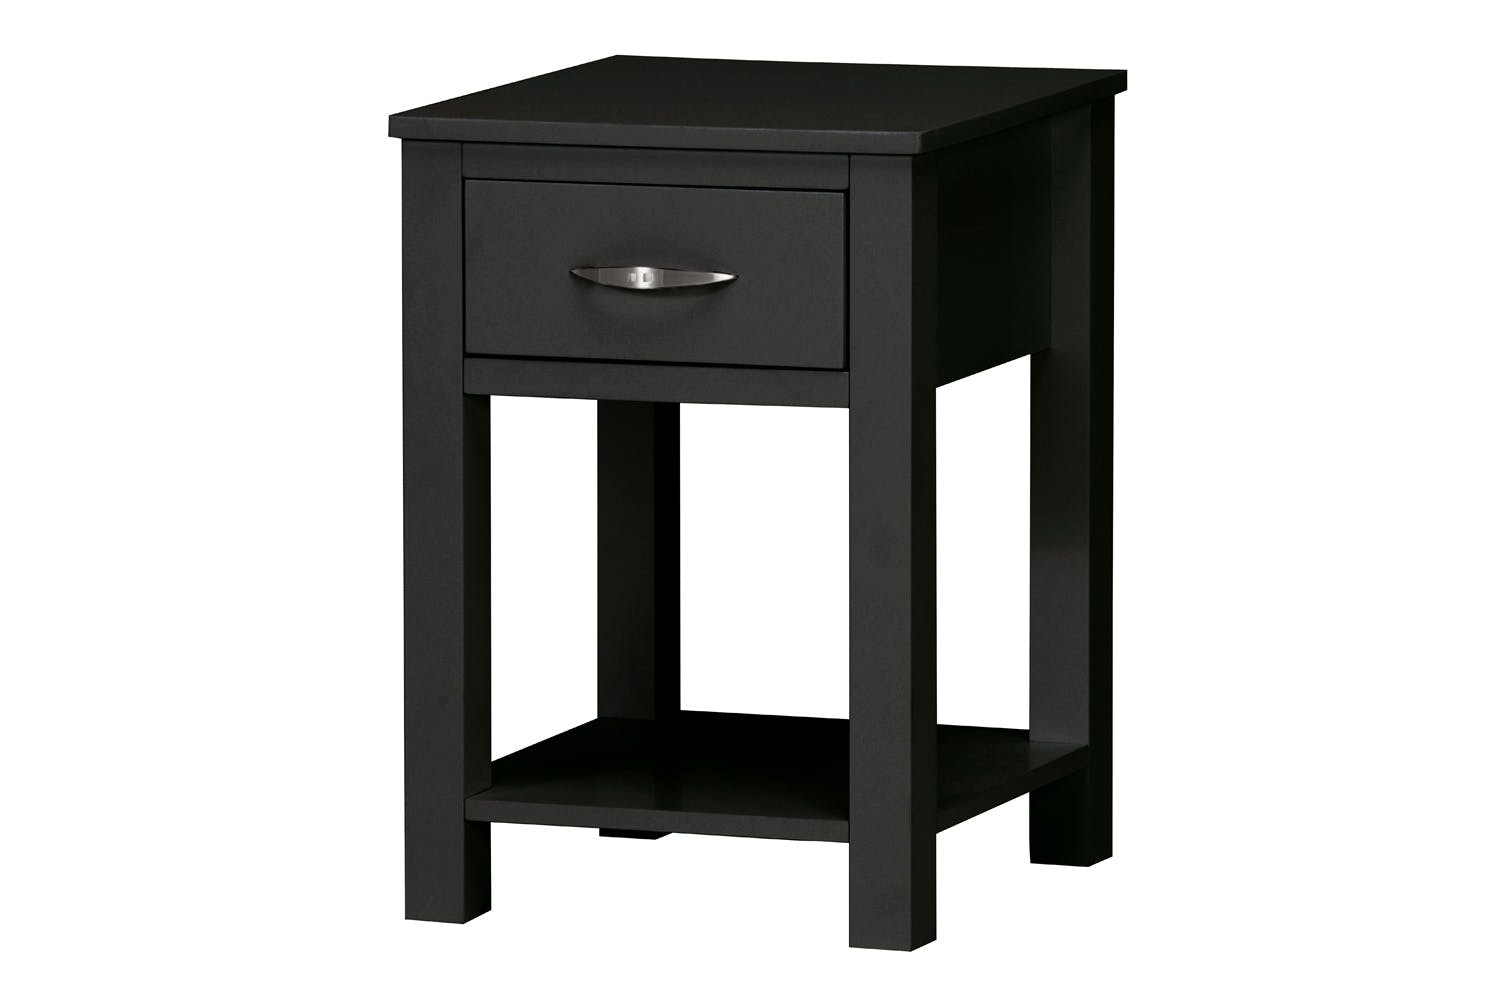 galway bedside debonaire furniture harvey norman black linon accent table white bar cabinet small chest drawers for living room christmas tablecloth and runner trestle legs target